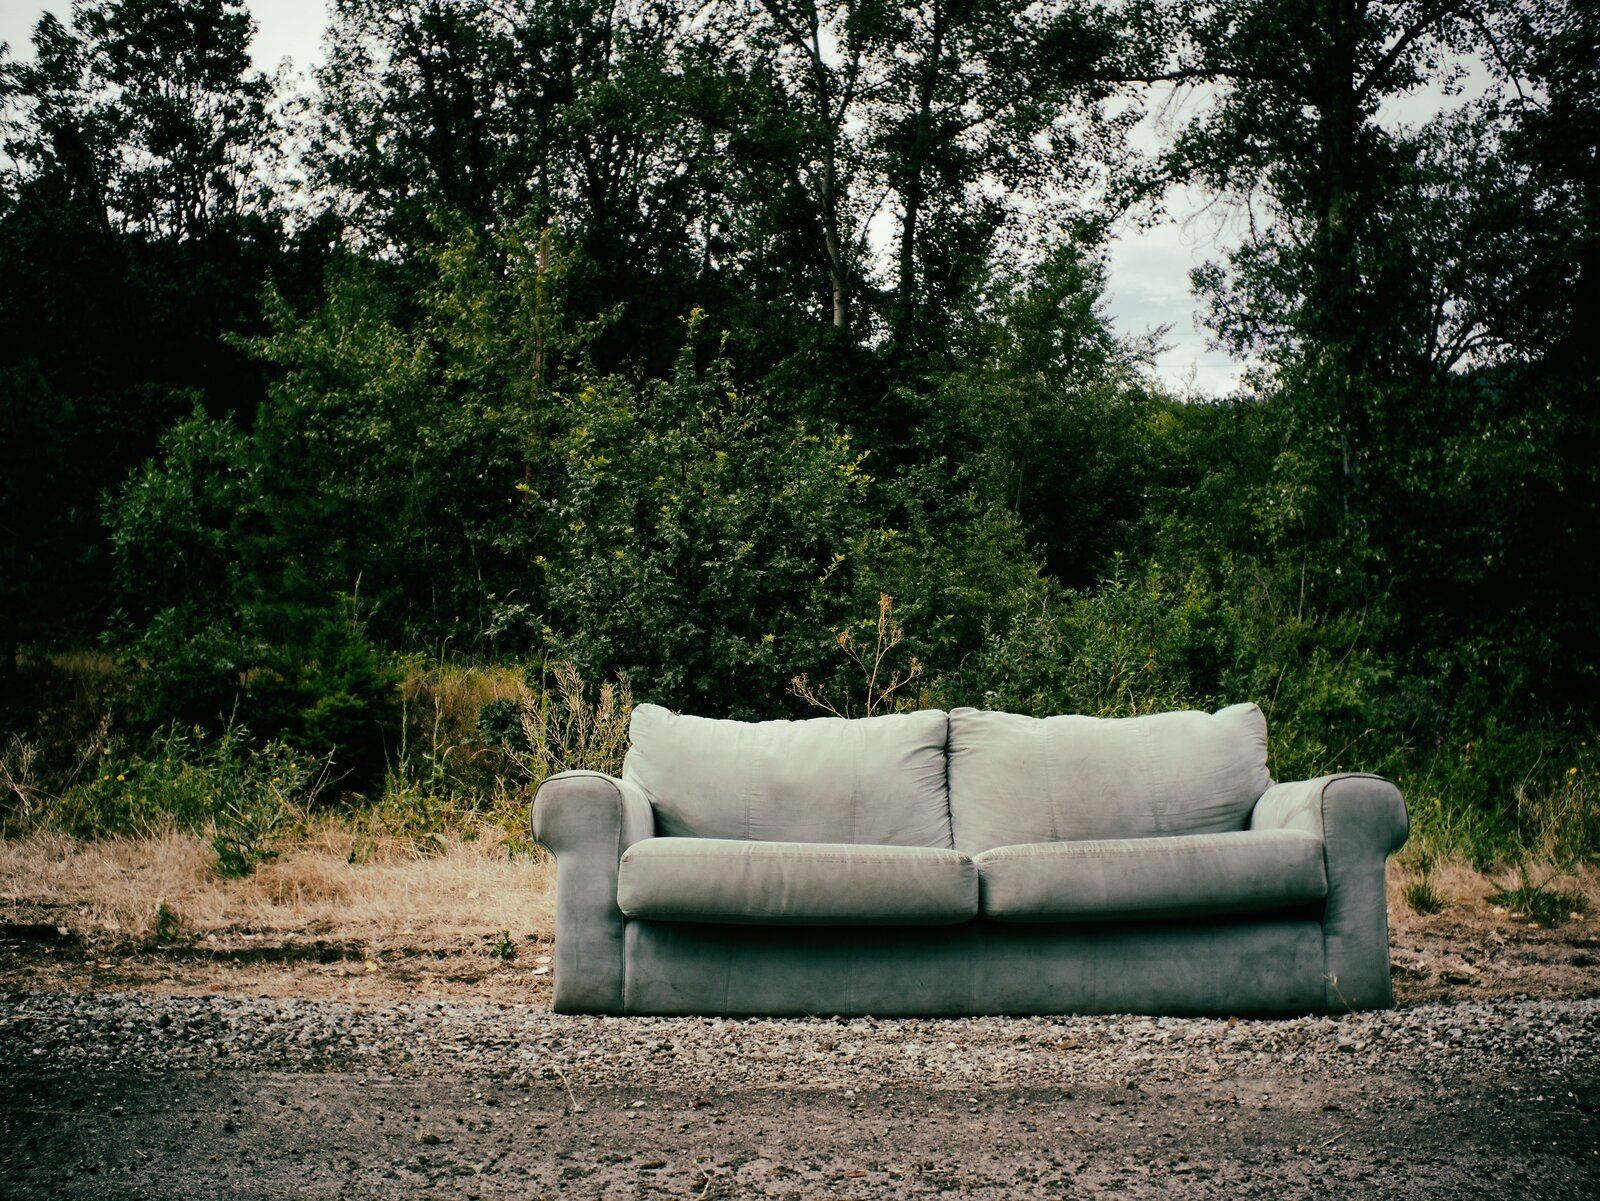 RuralCouch-AnalogEfex.jpg